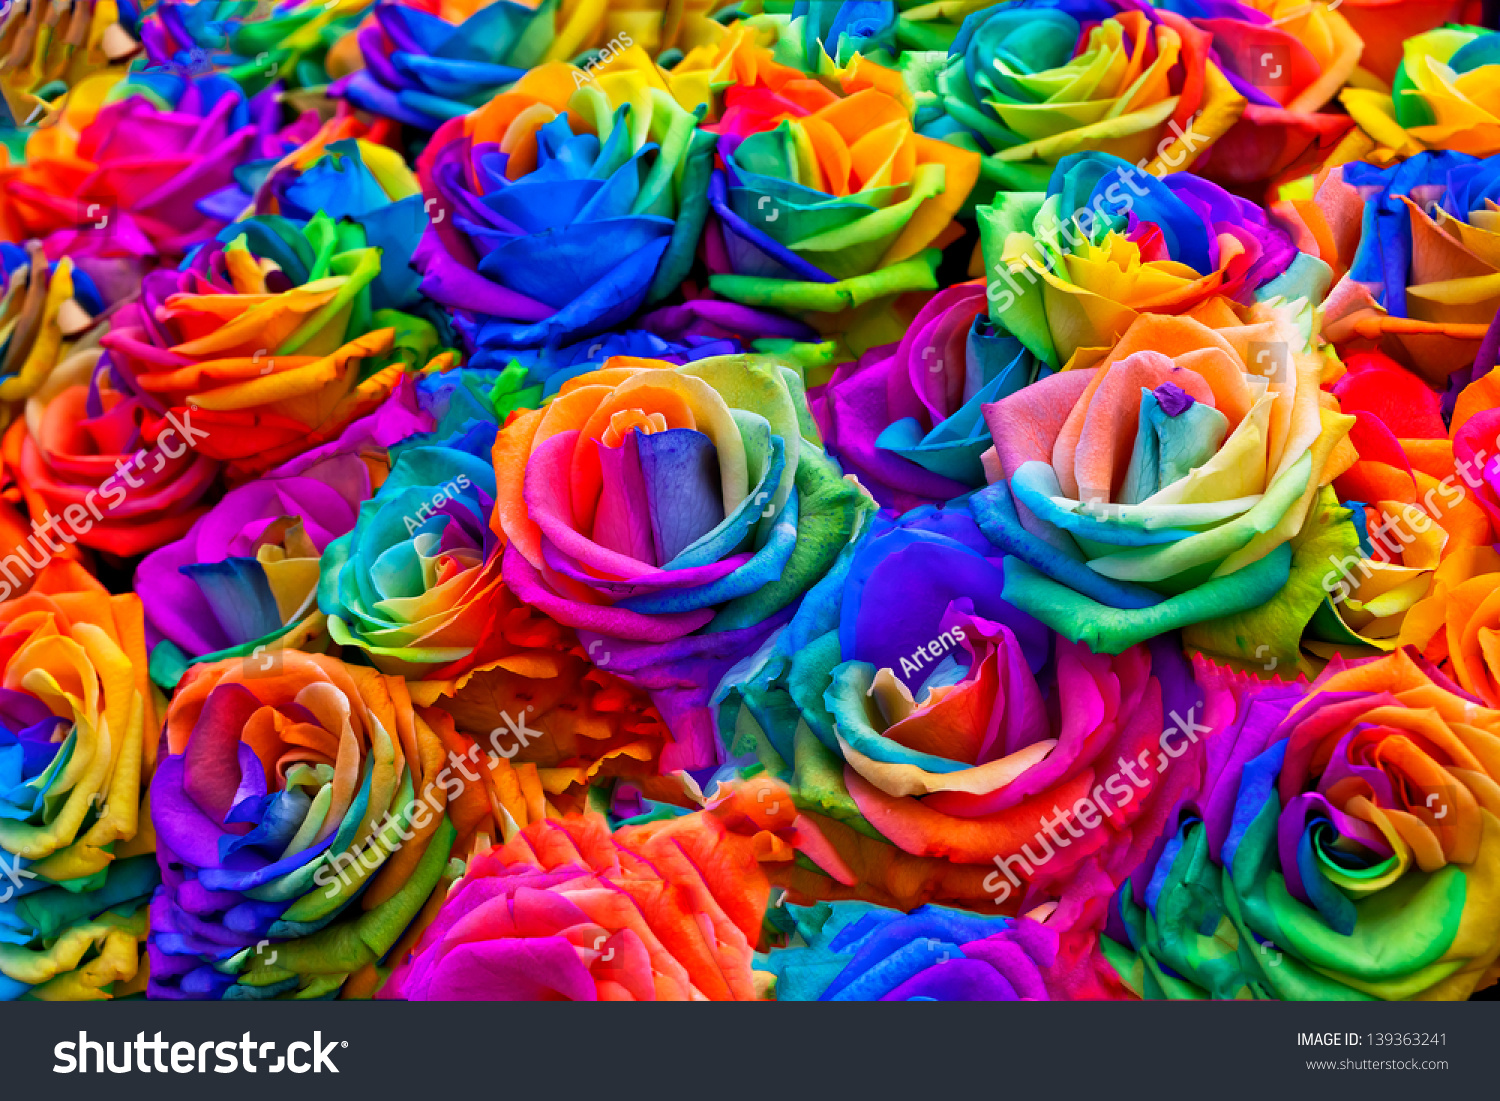 Bouquet rainbow roses floral pattern stock photo 139363241 for How to make a multicolored rose